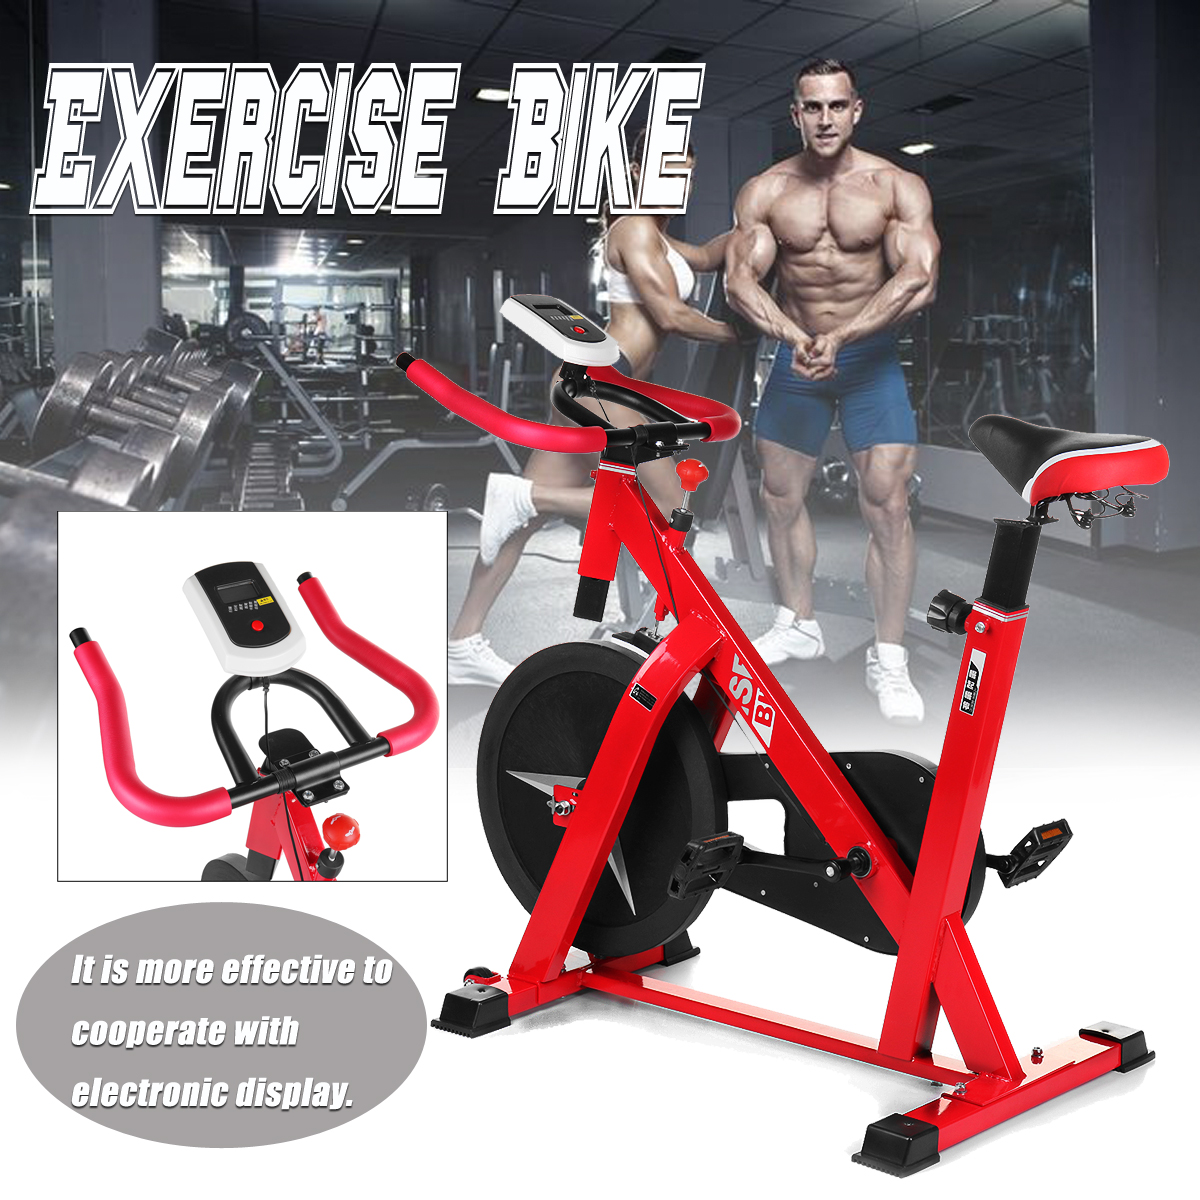 Red Exercise Bike Stationary Cycling Fitness Cardio Aerobic Equipment Gym